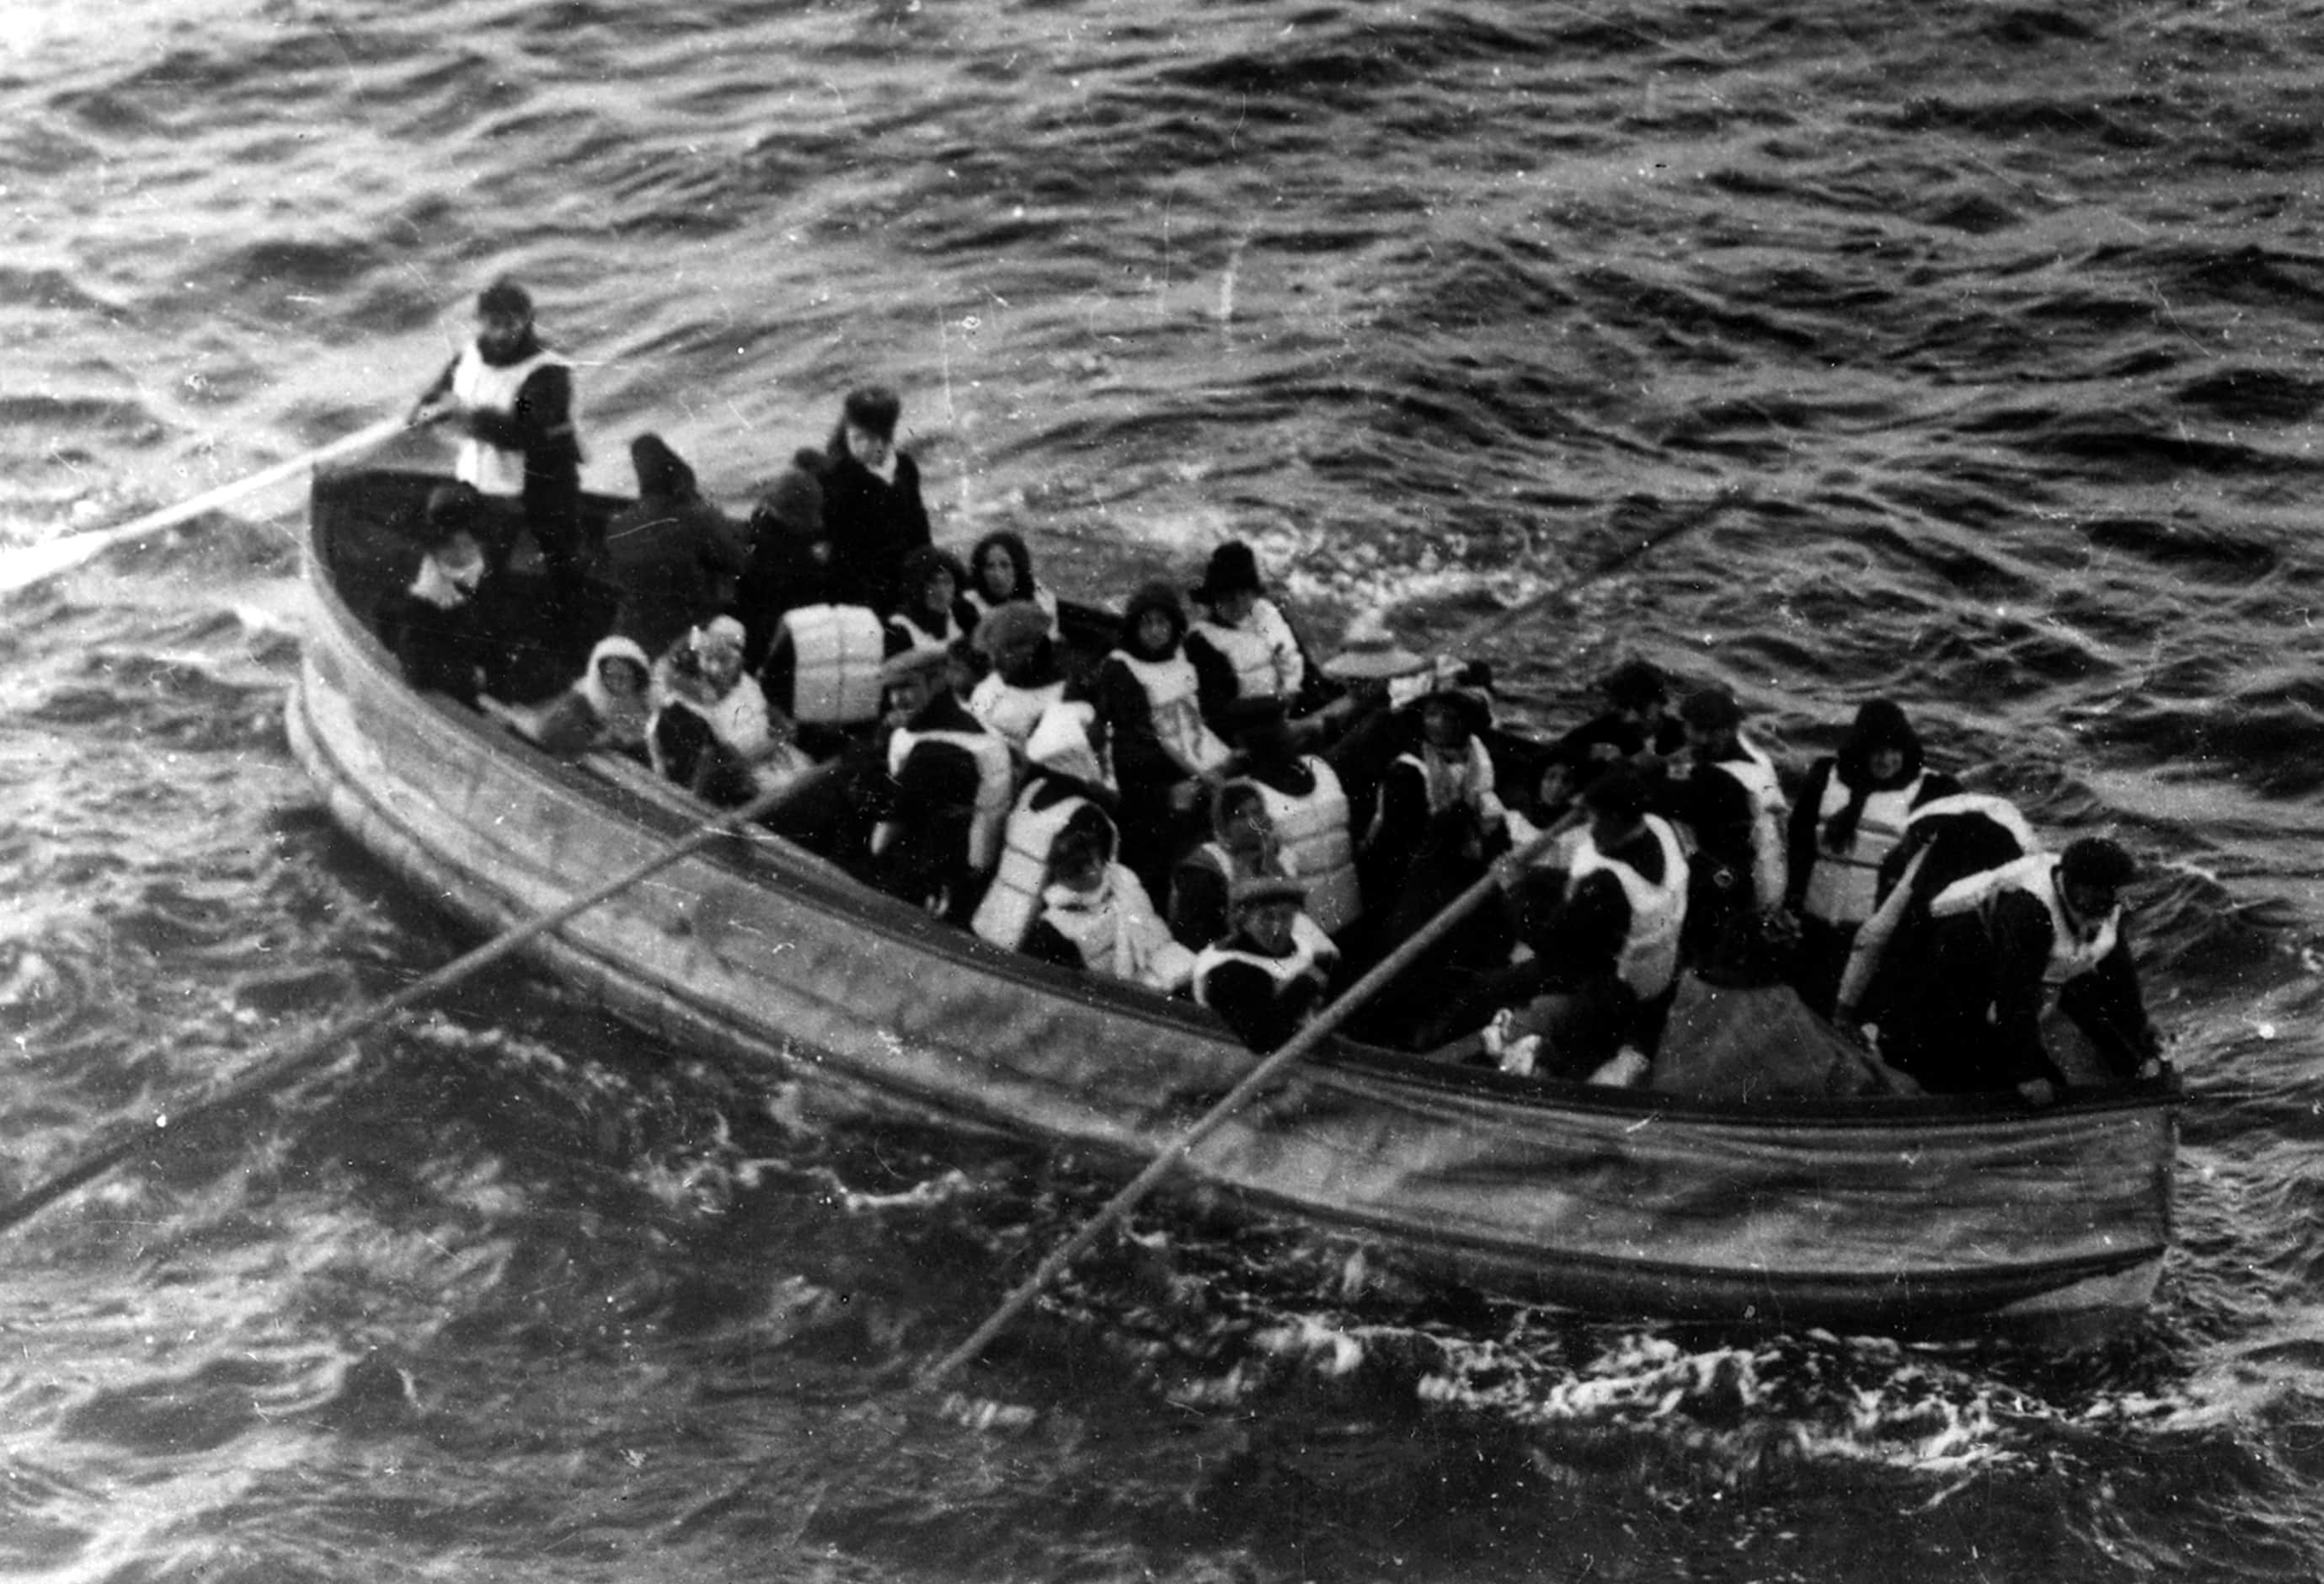 The Titanic reduced the number of lifeboats from 65 to 20, at the last minute!